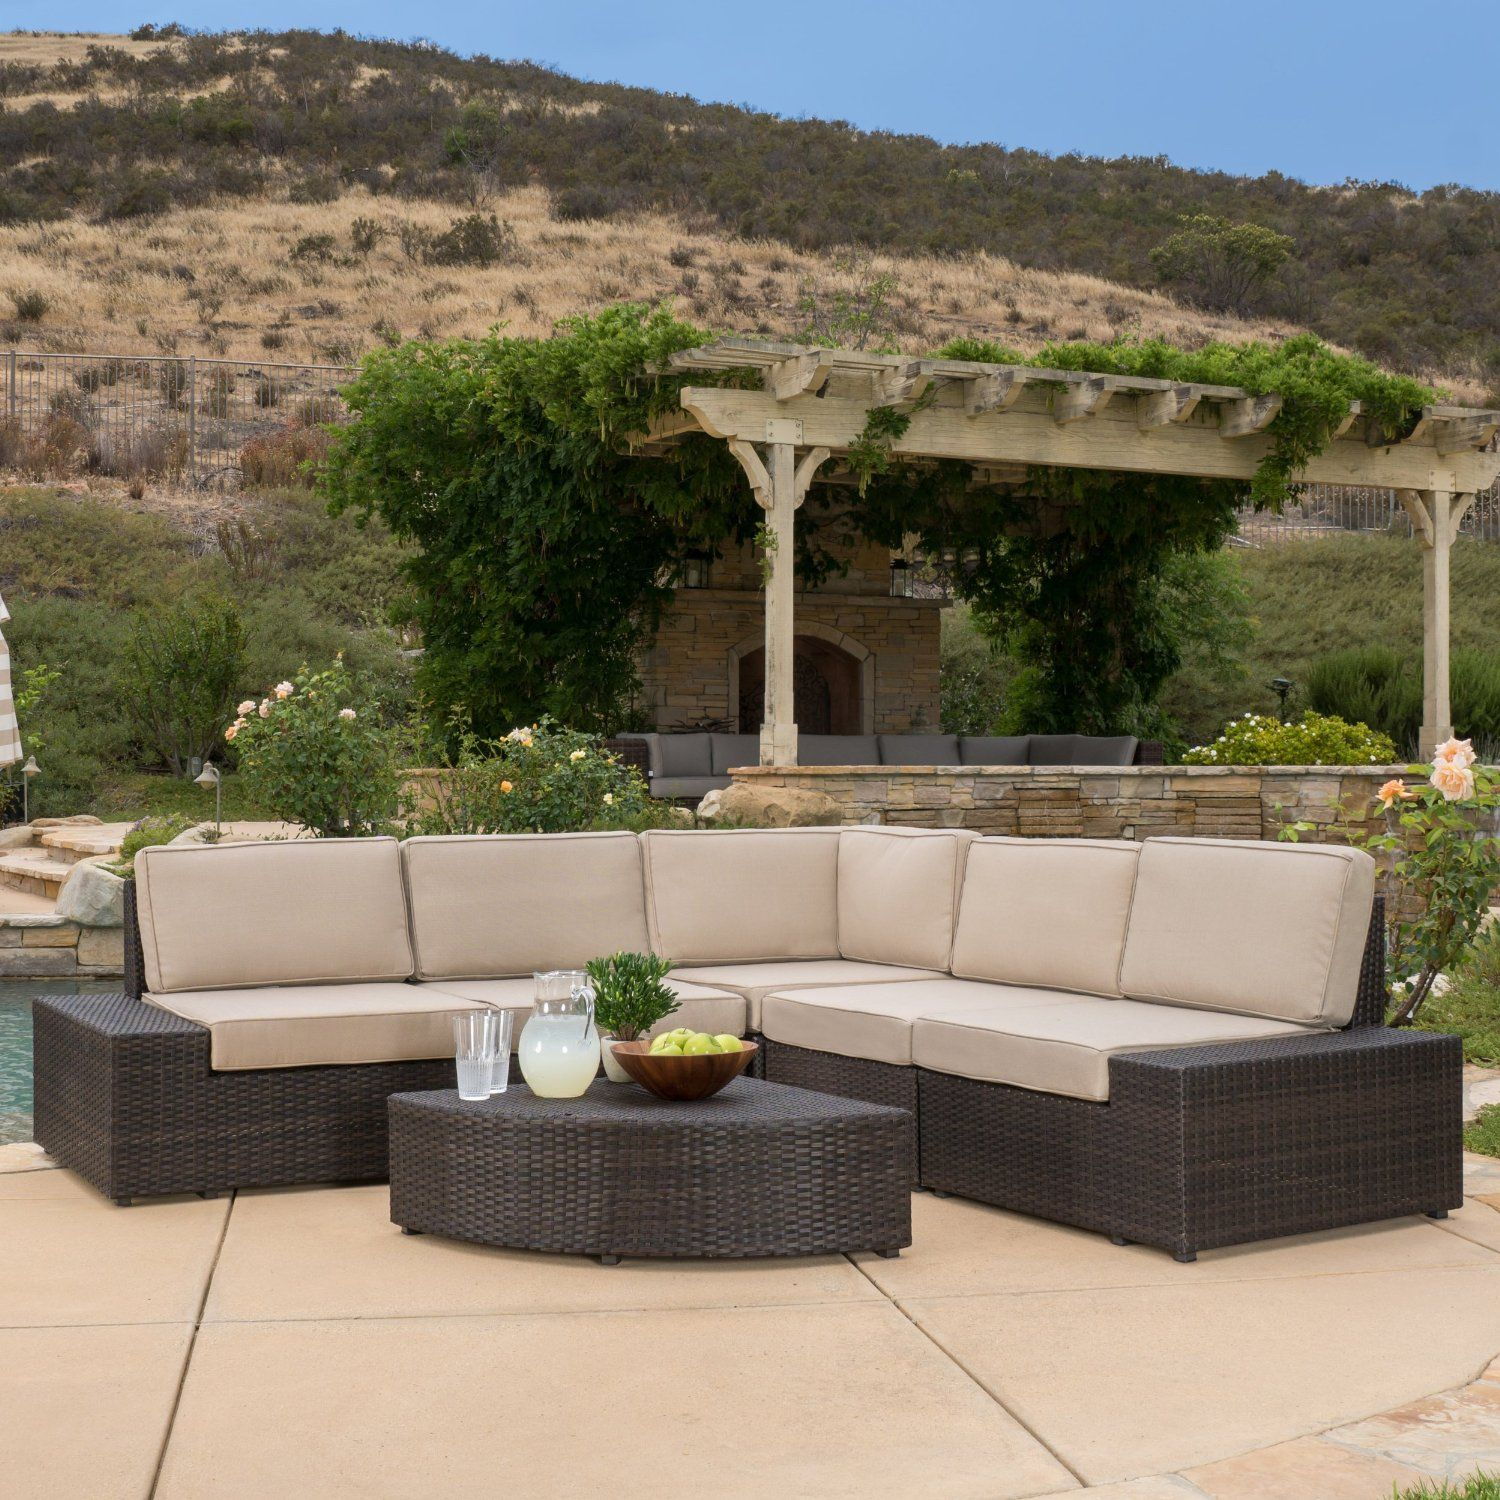 Reddington Outdoor Brown Wicker Sectional Seating Sofa Set With Cushions